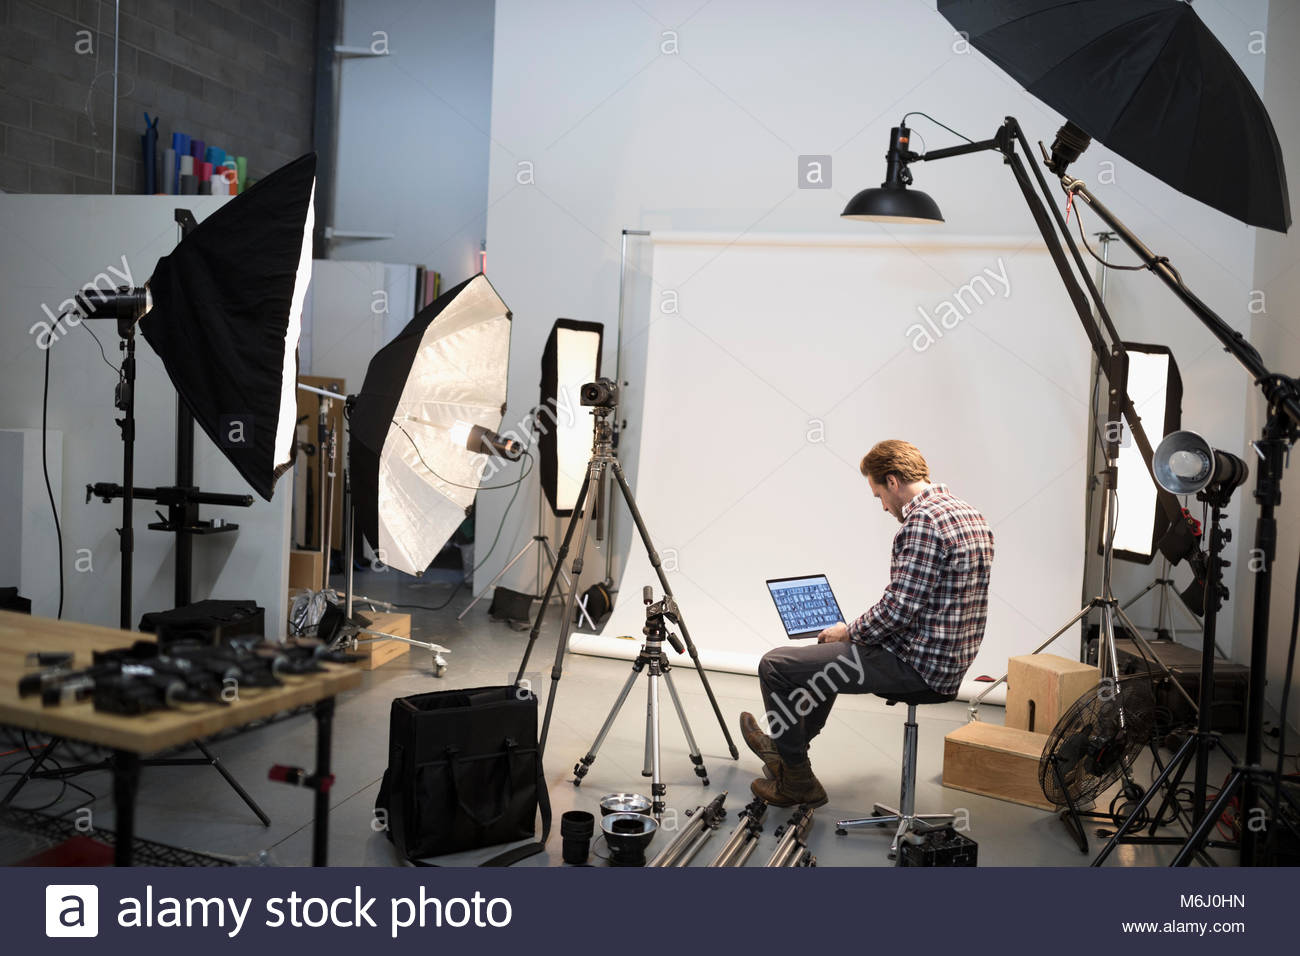 Male photographer reviewing digital photo proofs on laptop at photo shoot in studio - Stock Image